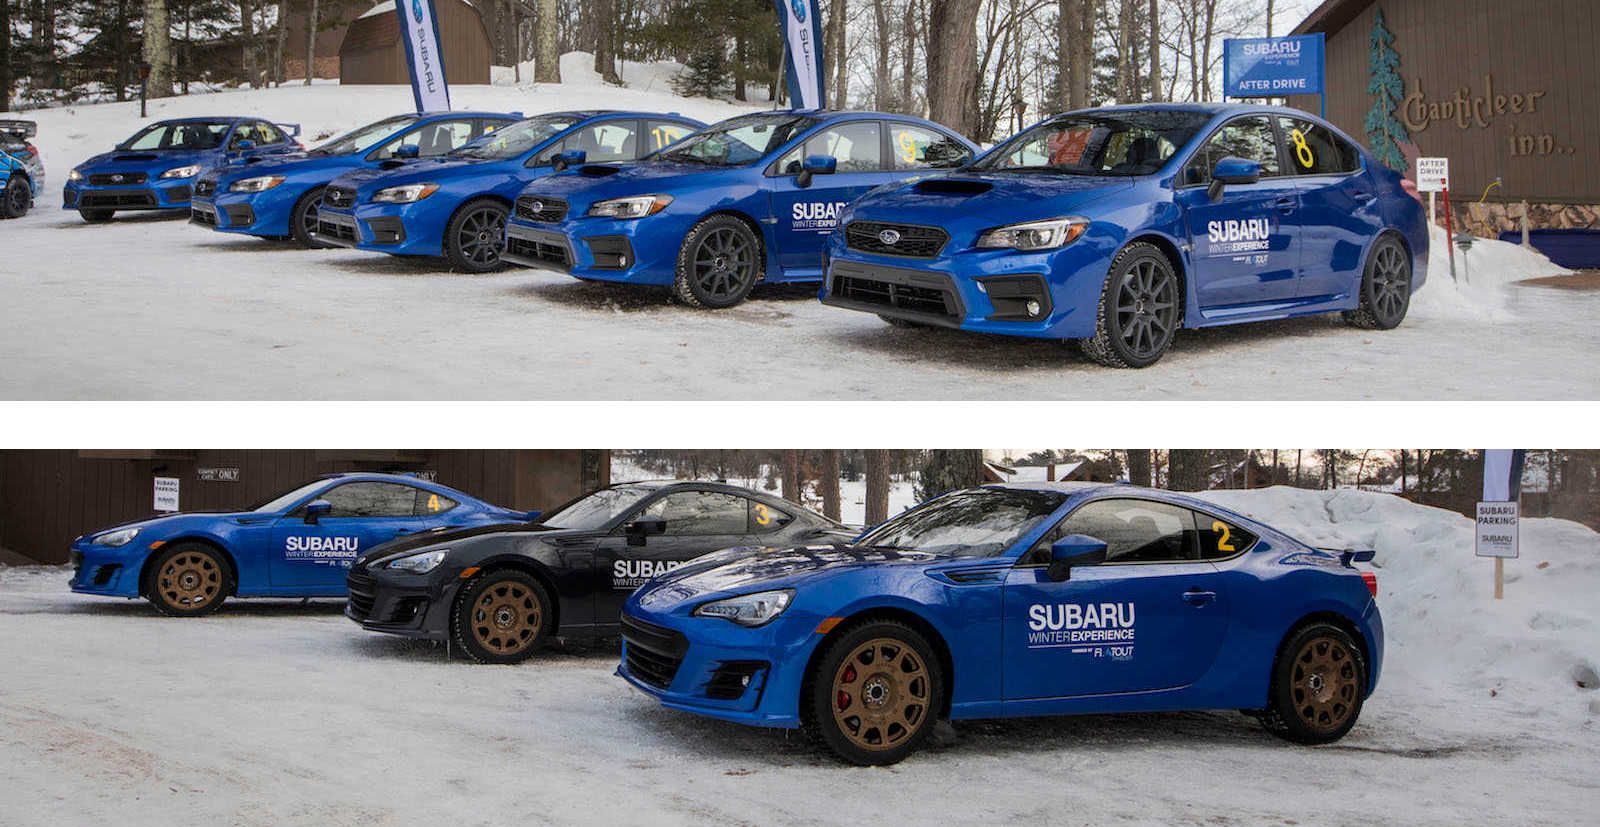 Subaru BRZ, WRX, and WRX STI Winter Driving Experience